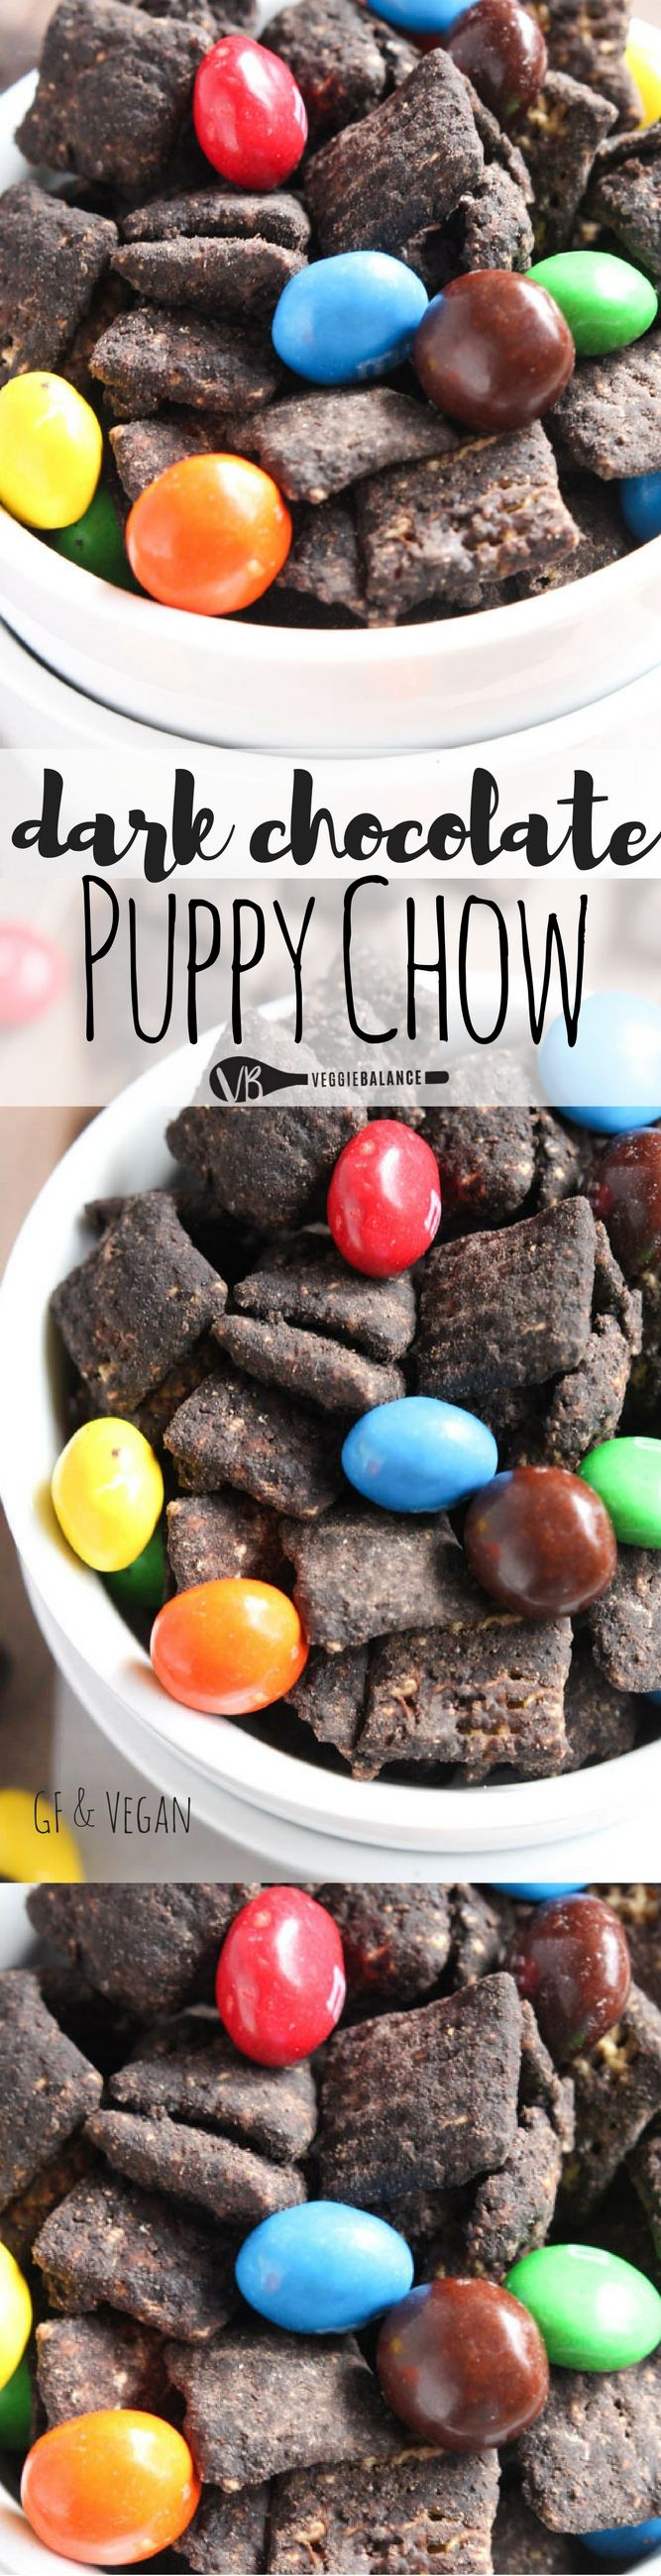 Dark Chocolate Puppy Chow recipe, 6-Ingredients, No one will notice that it has a healthier, gluten-free twist than the traditional recipes. This magic formula has been tested and approved.